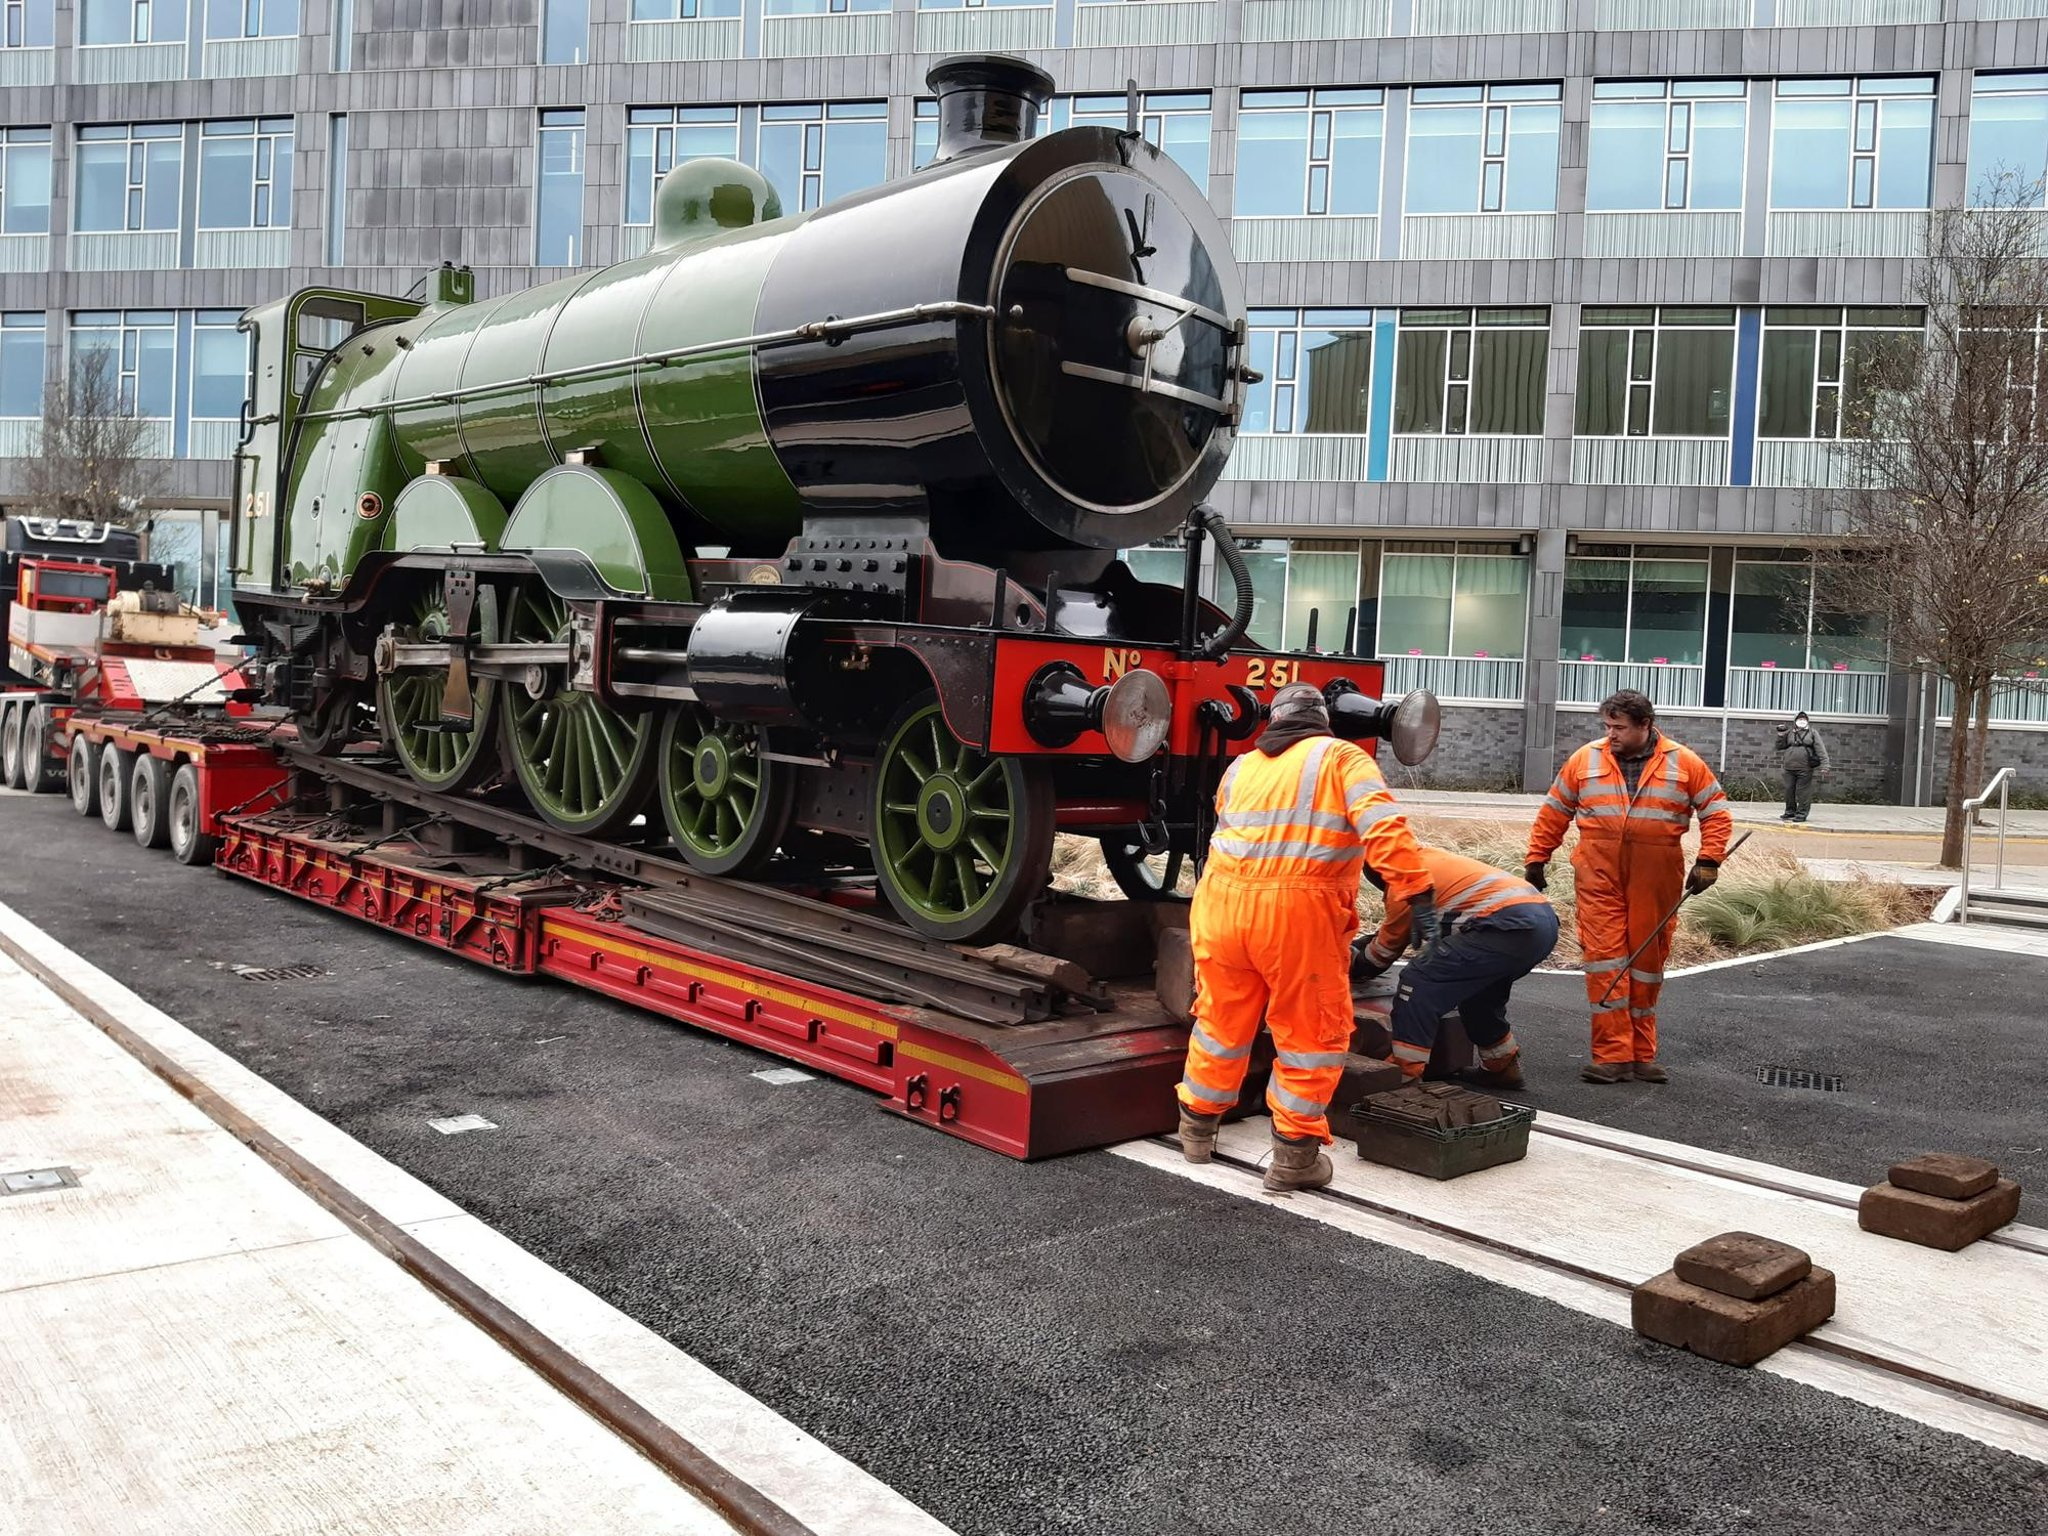 Historic railway loco takes up residence in new South Yorkshire museum